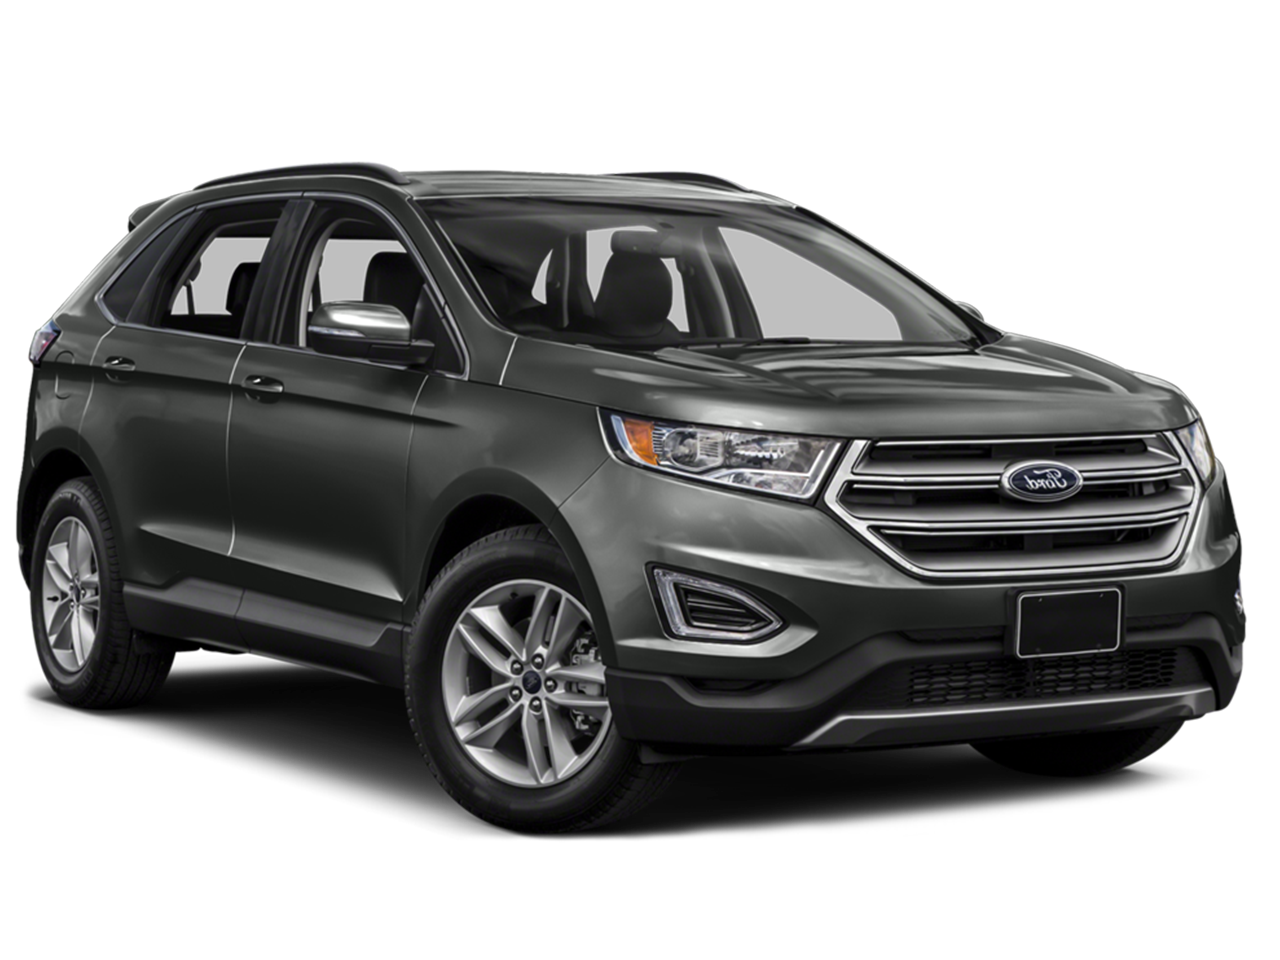 Ford Edge Exterior Colors 2017 2018 2019 Ford Price